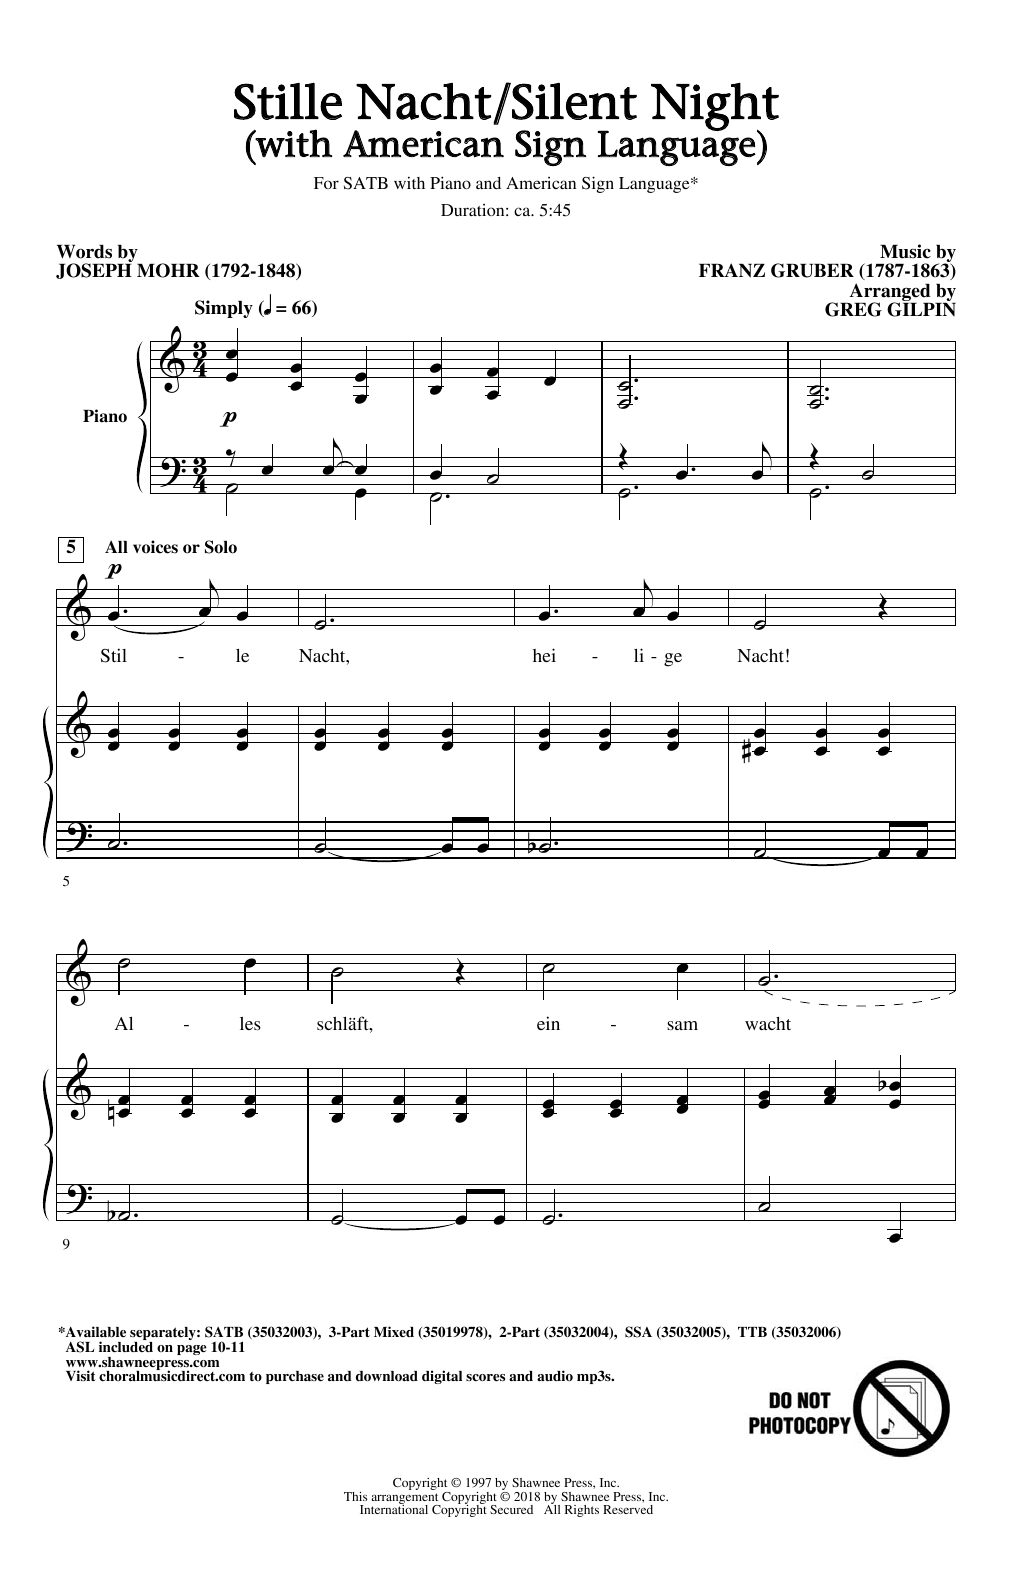 Stille Nacht/Silent Night (With American Sign Language) (SATB Choir)